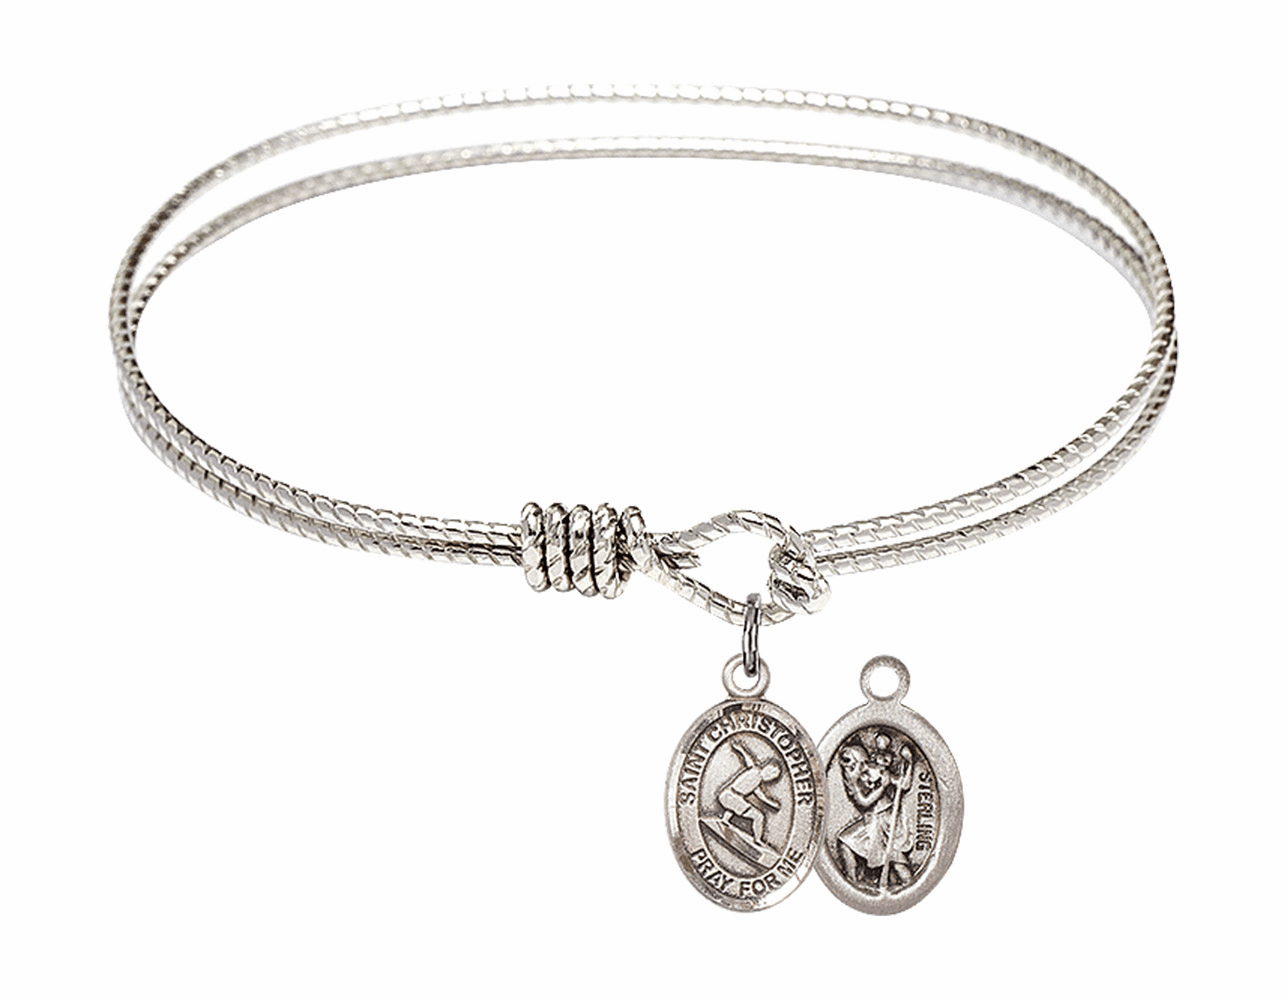 Twist Round Eye Hook St Christopher Surfing Bangle Charm Bracelet by Bliss